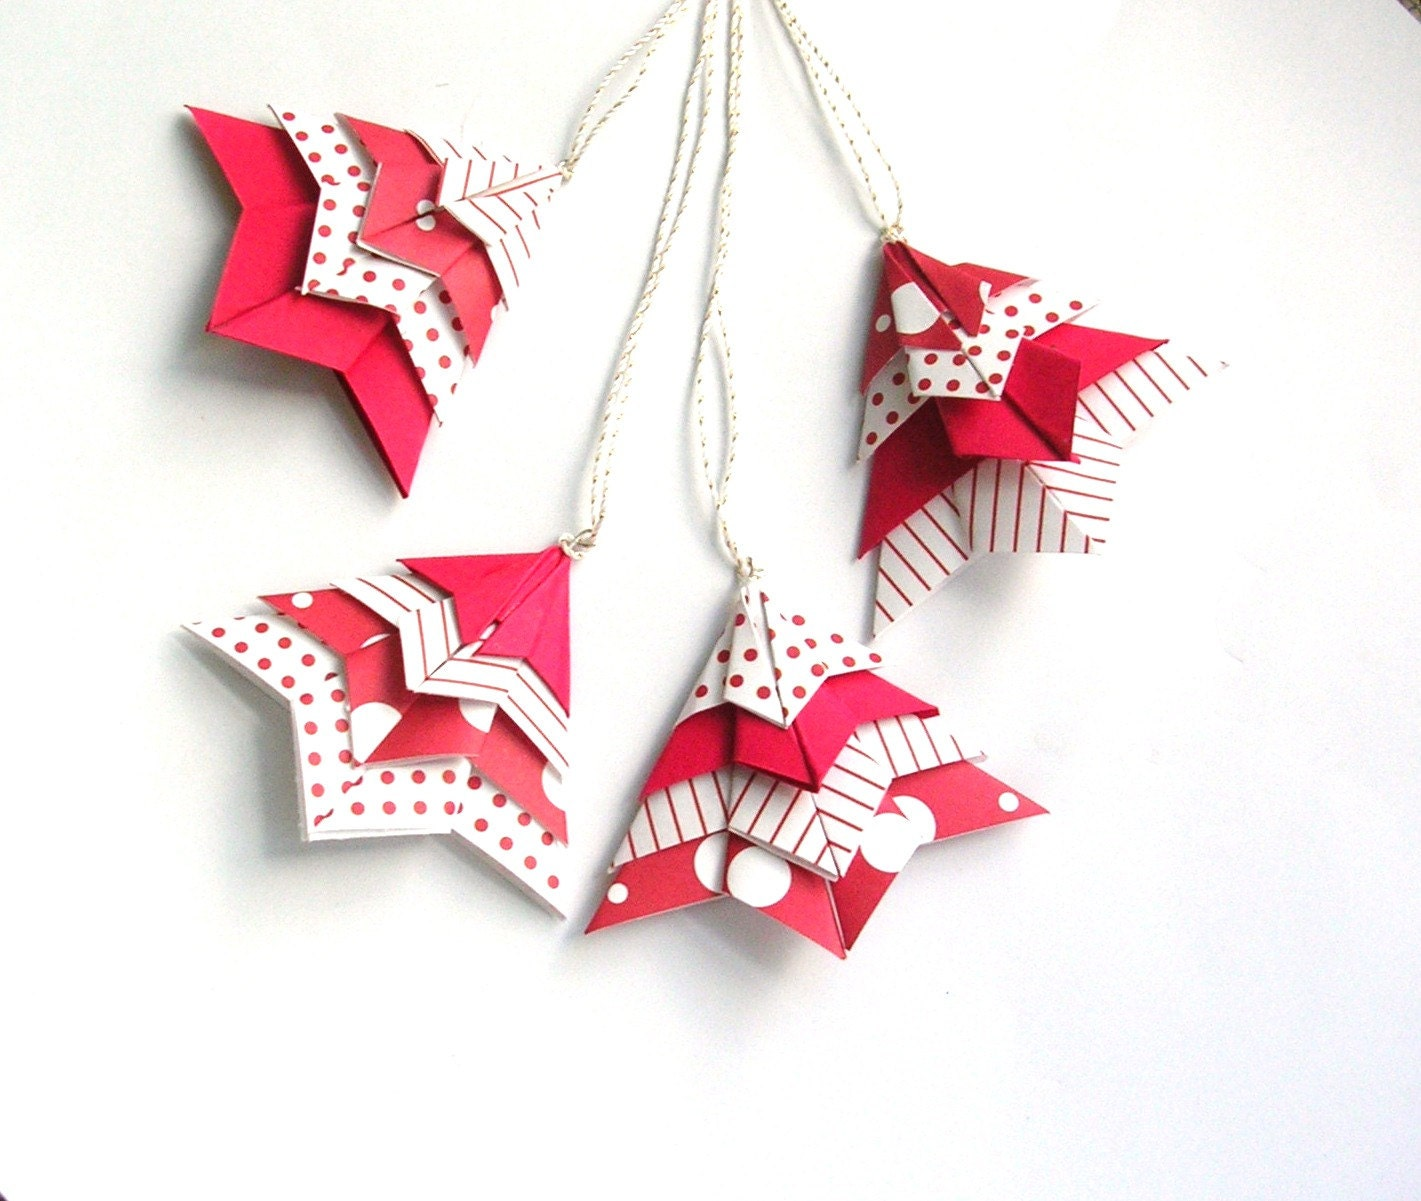 Origami Christmas Decorations: Origami Christmas Tree Package Toppers...Tree